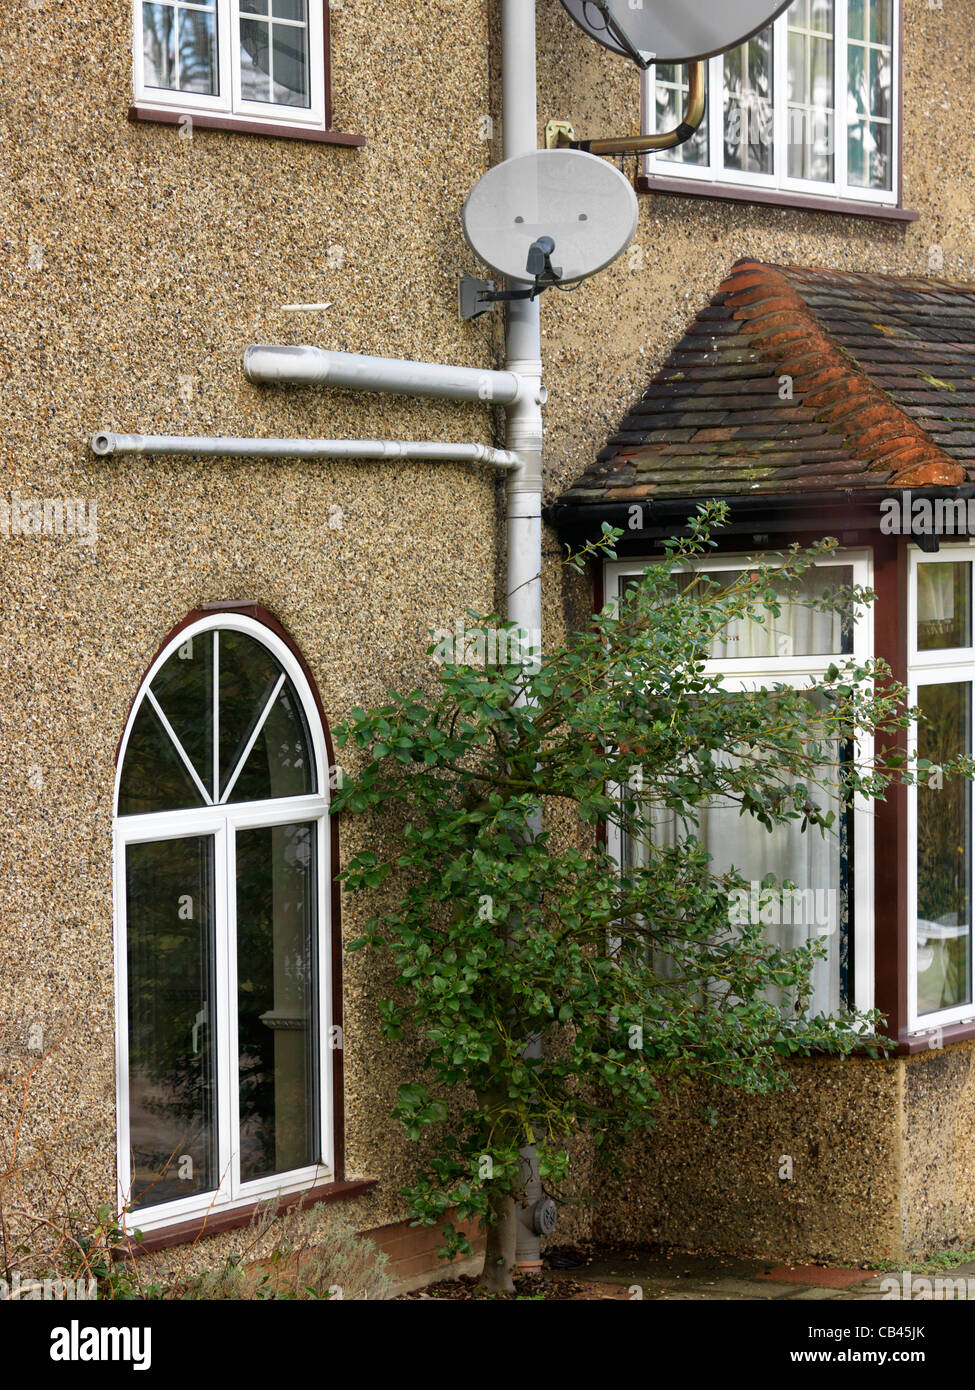 Soil Pipe On The Front Of The House - Stock Image